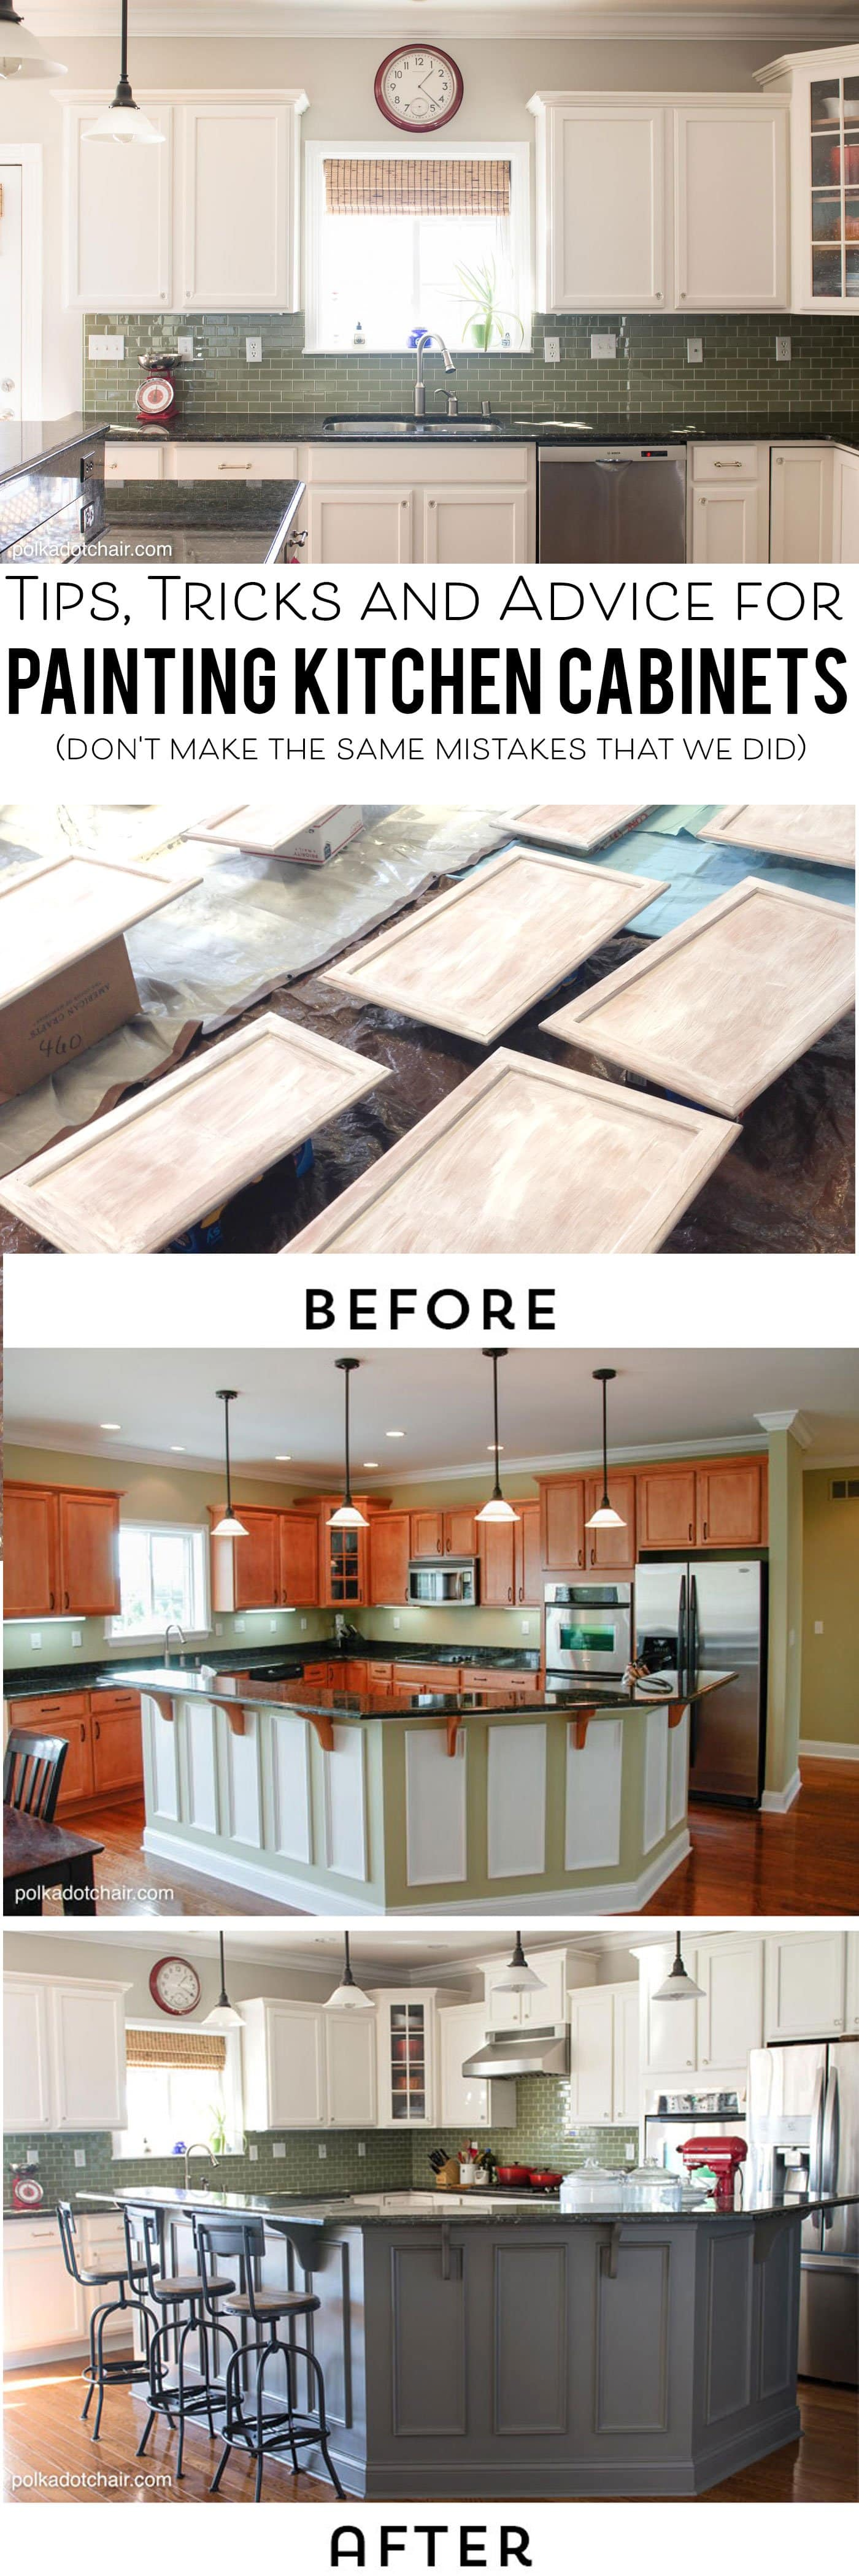 2 redo kitchen cabinets Tips and Tricks and what NOT to do when painting your kitchen cabinets